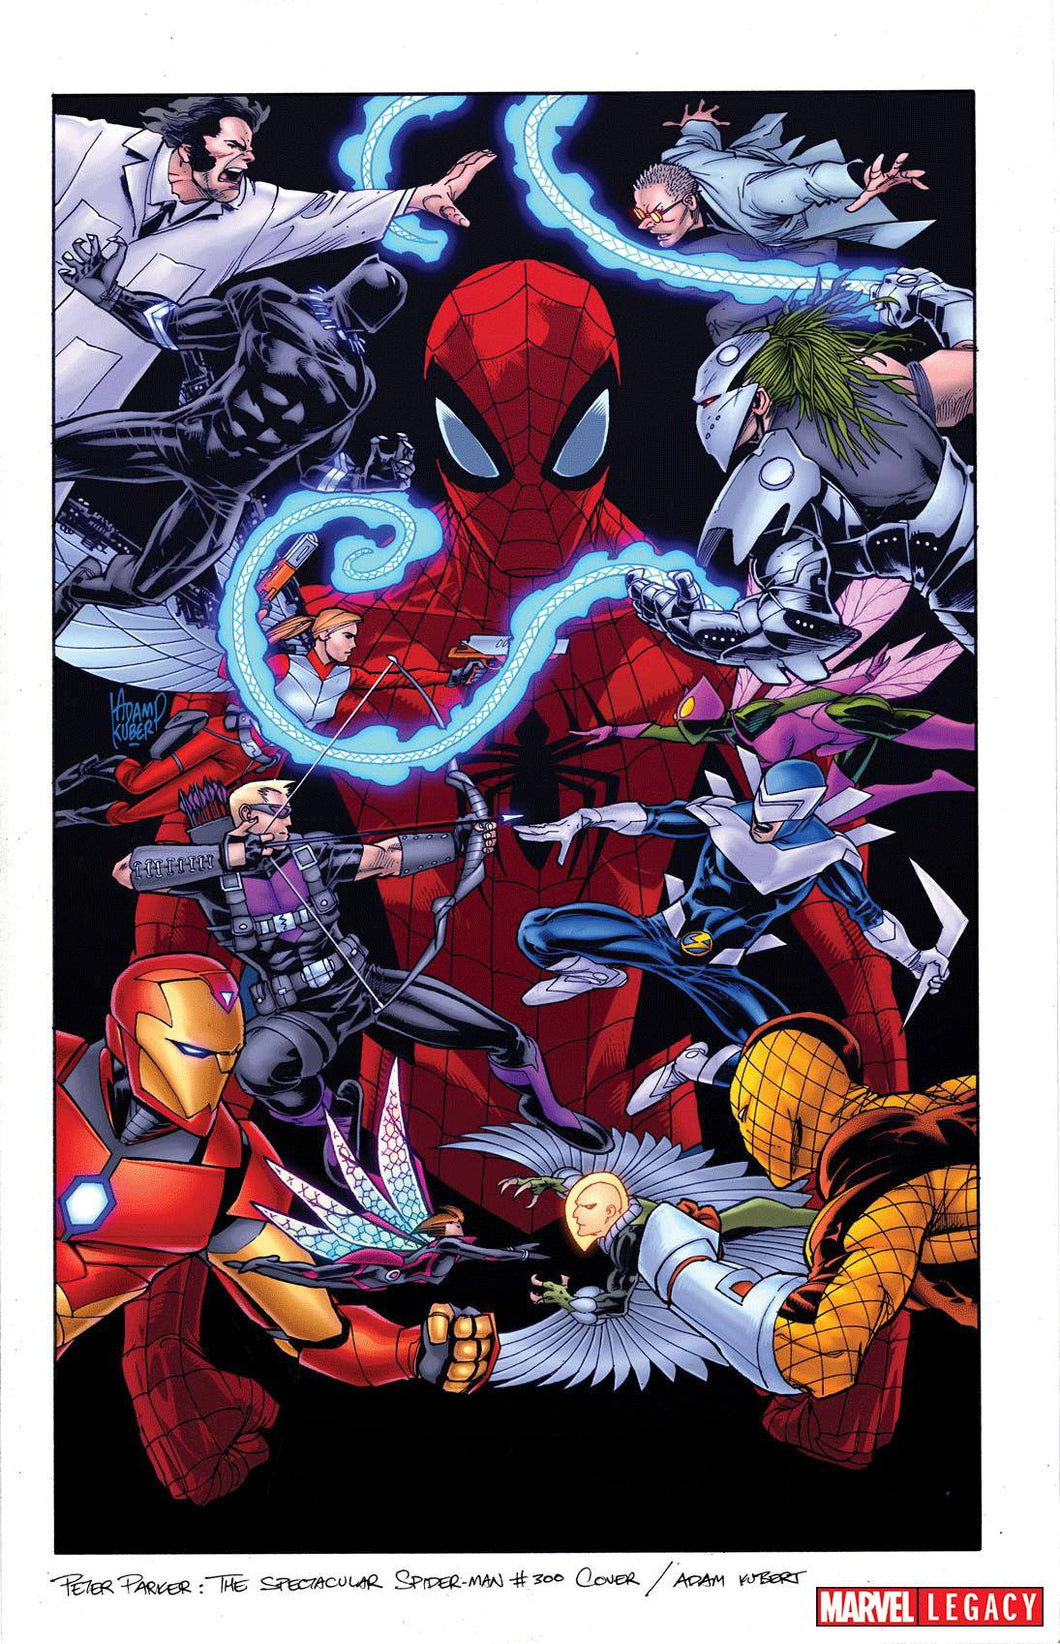 Spectacular Spider-Man #300 Ratio Variants